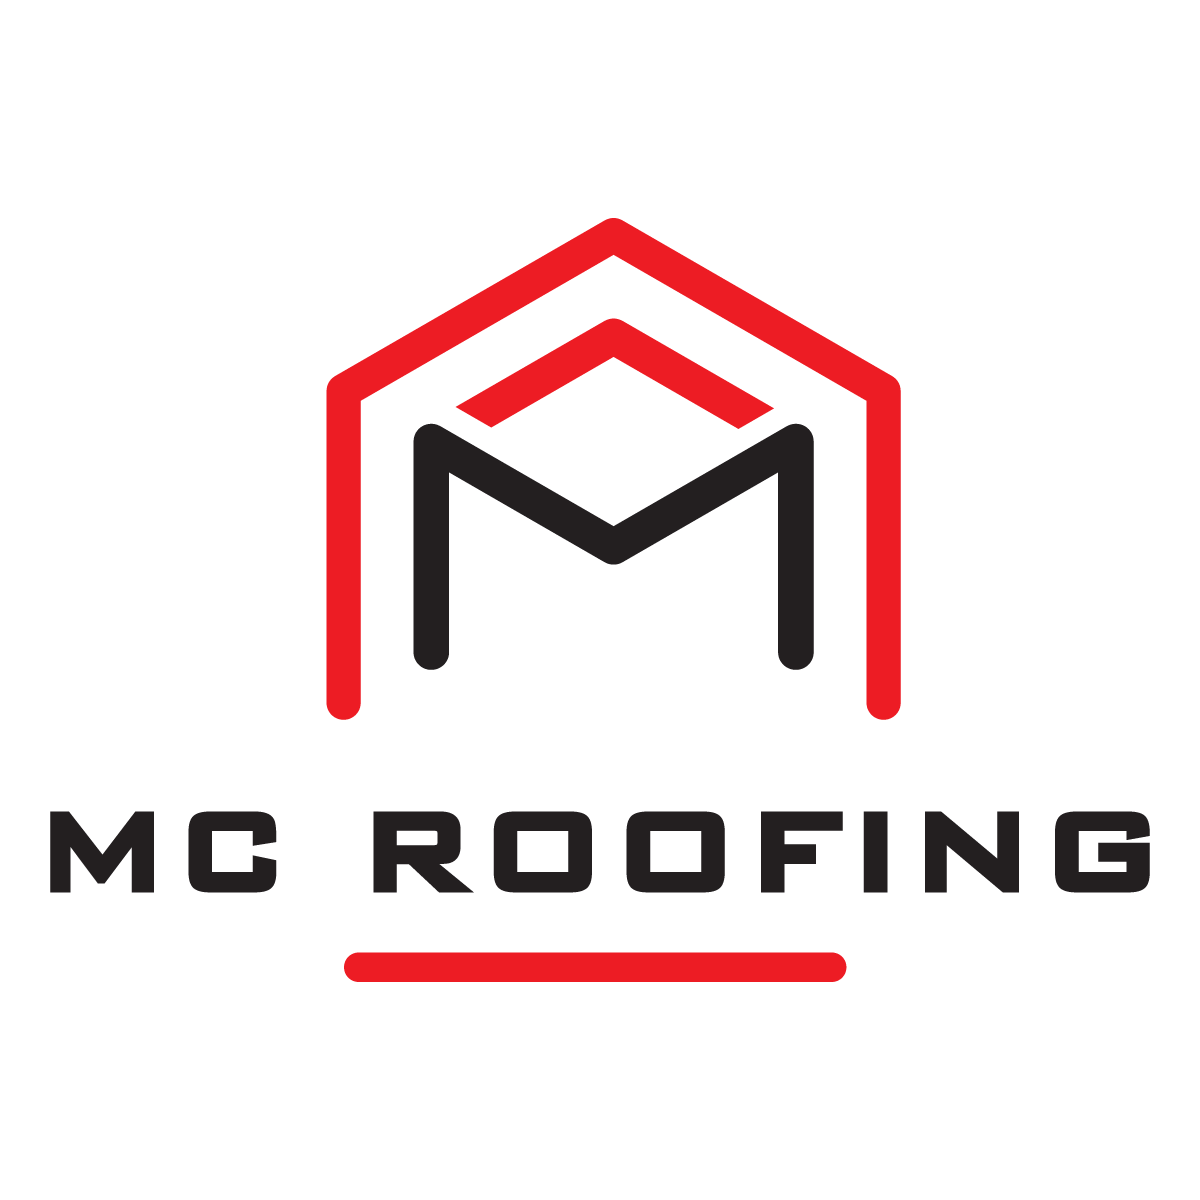 M.C. Roofing